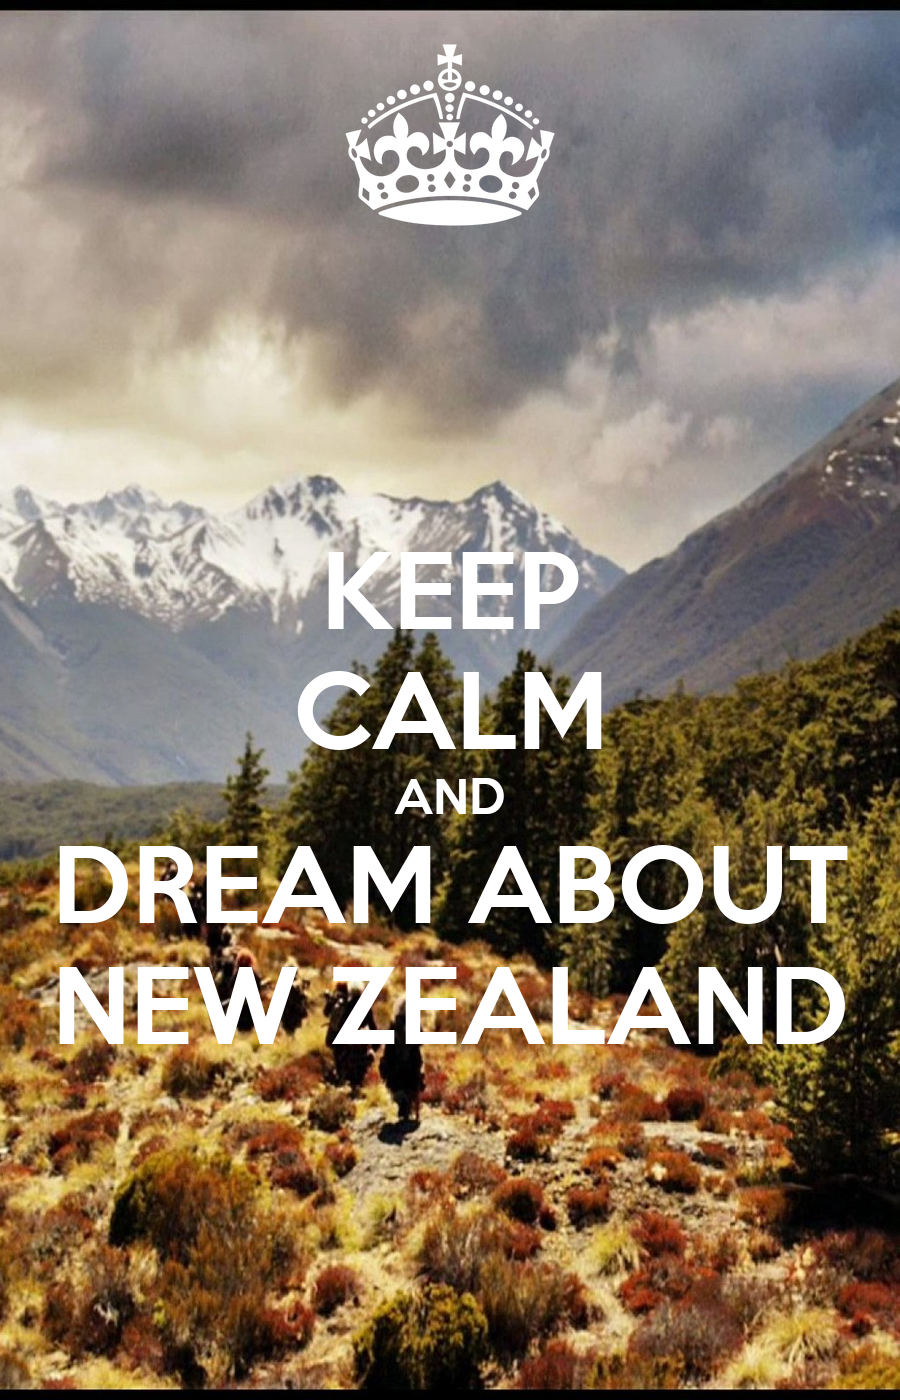 KEEP CALM AND DREAM ABOUT NEW ZEALAND